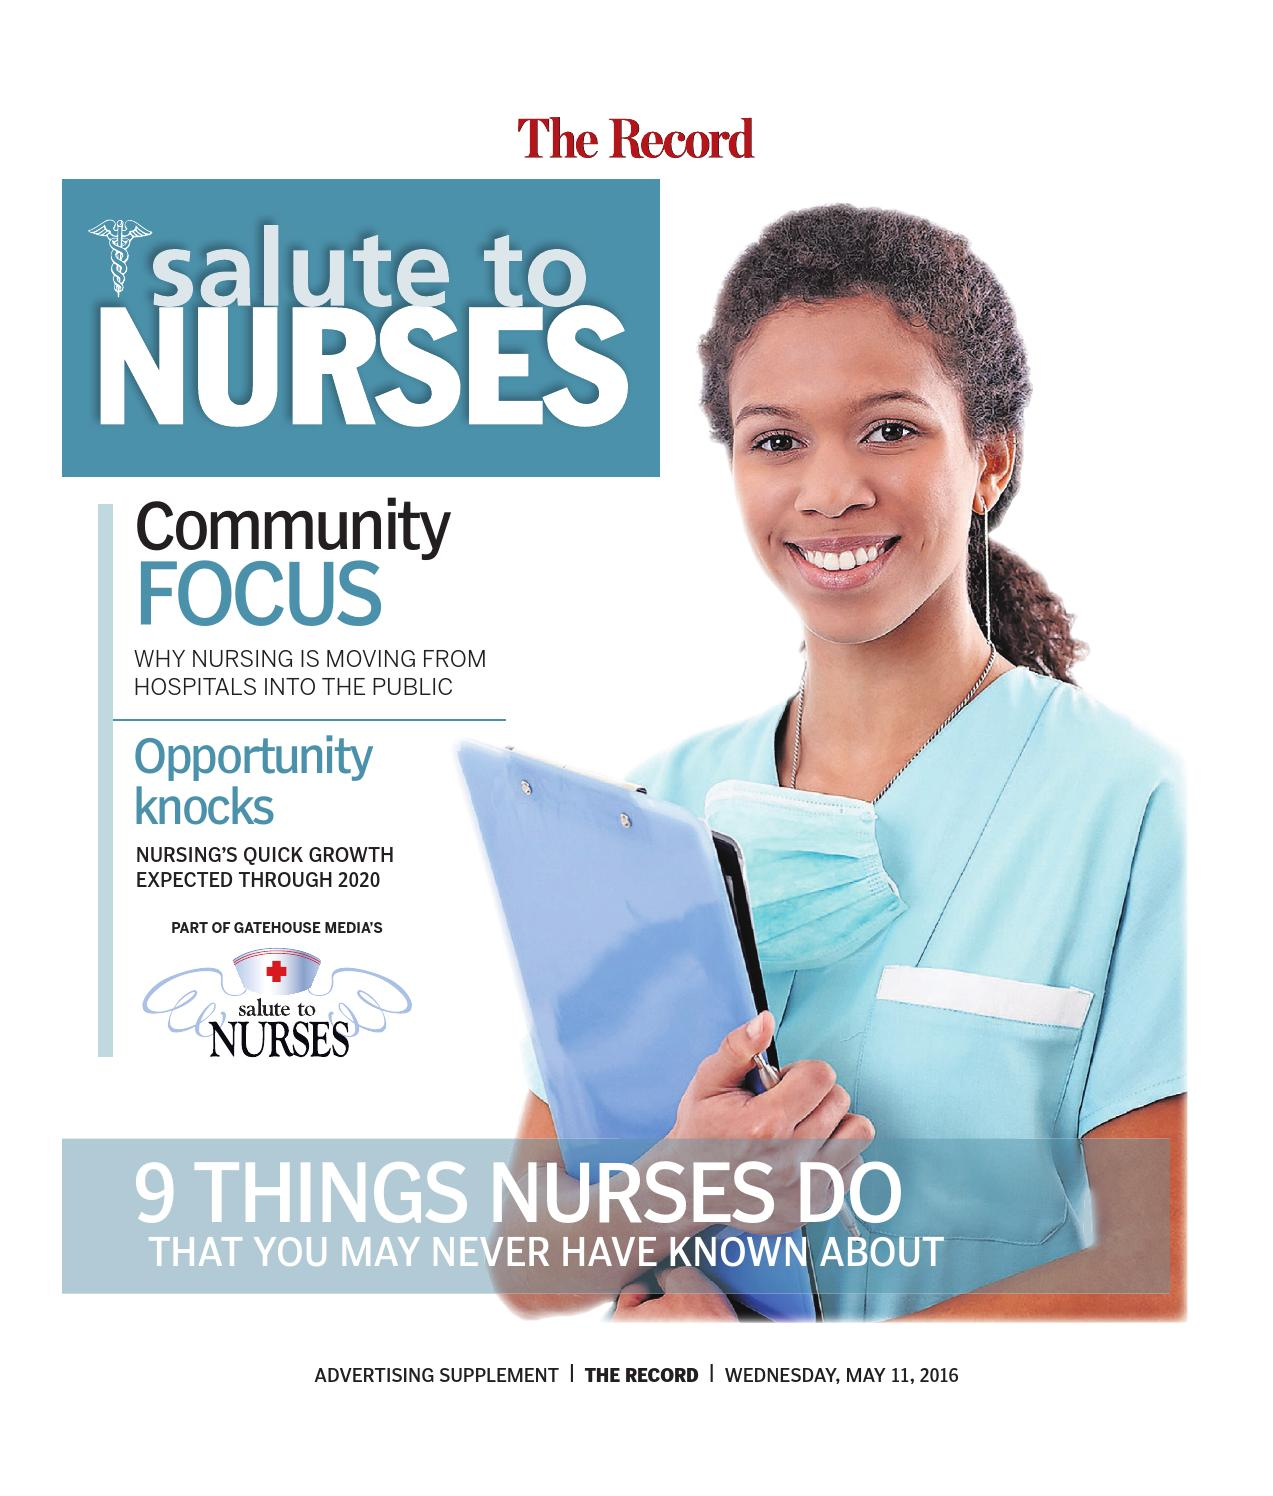 examining the de escalation of violence nursing workplace nursing essay Workplace violence is an increasingly recognized safety issue in the health care community workplace violence is generally defined as act orany threat of physical assault, harassment, intimidation and other coercive behavior.